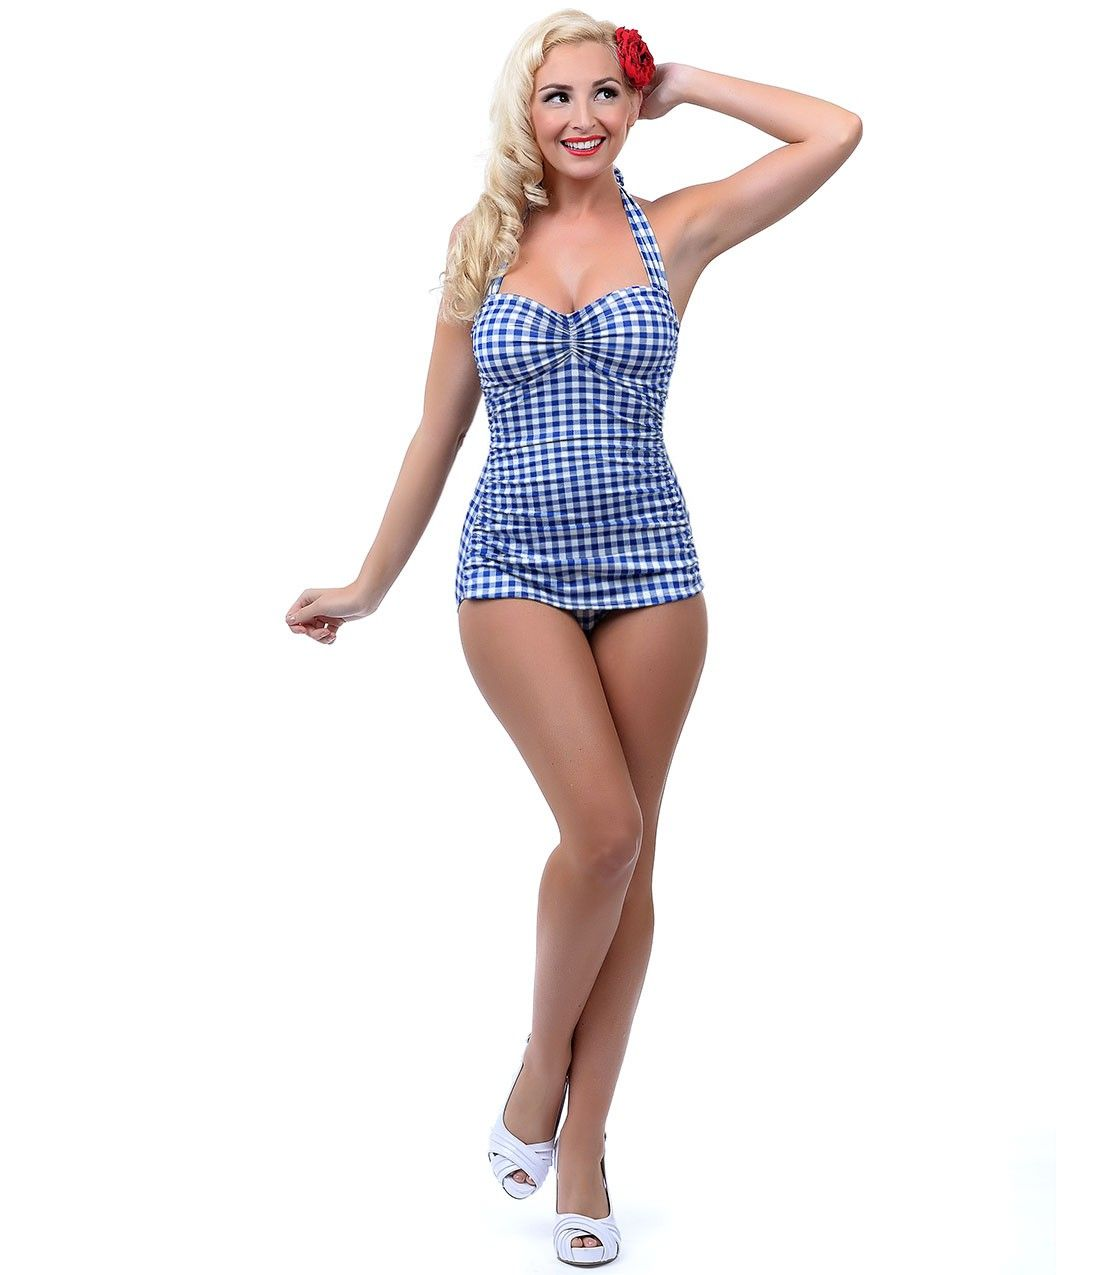 Retro Style Bathing Suits Part - 33: Style Royal Blue U0026 White Gingham One Piece Swimsuit - Unique Vintage - Prom  Dresses, Retro Dresses, Retro Swimsuits.